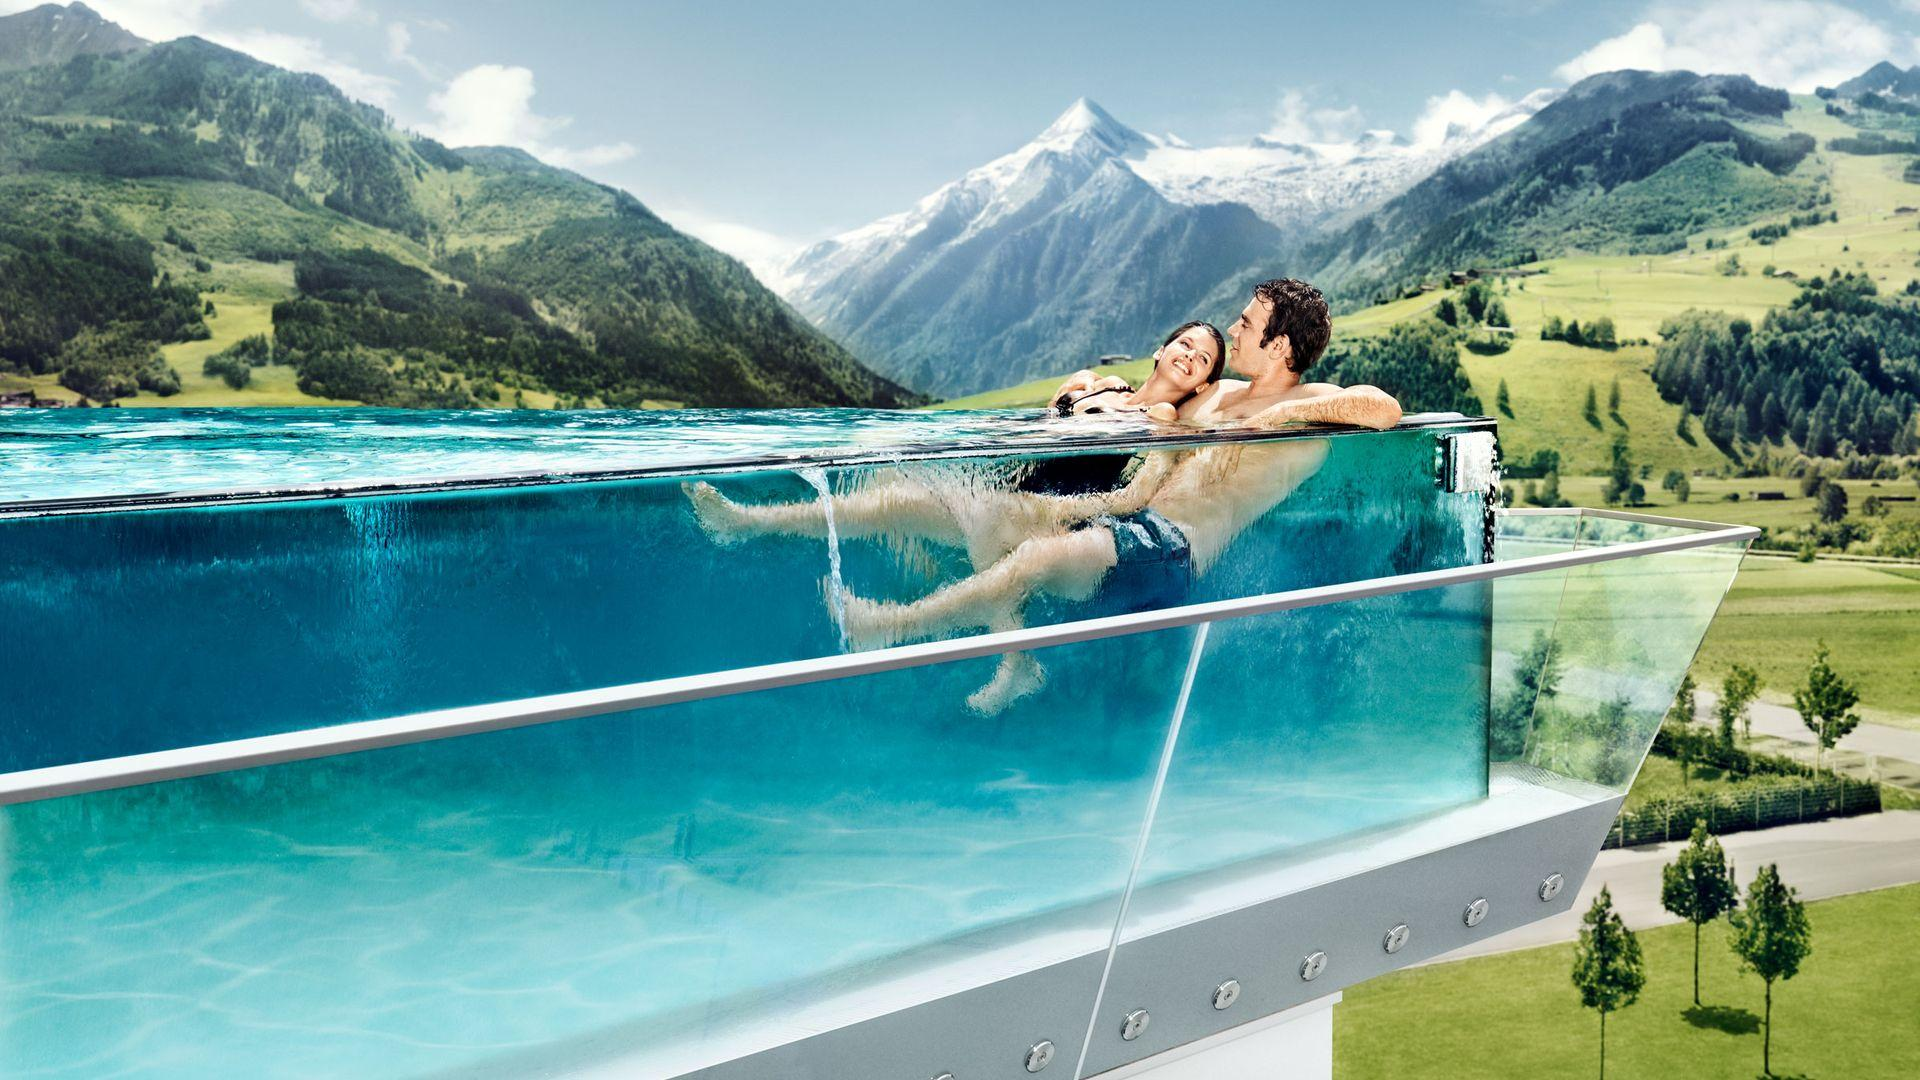 4*S Tauern Spa Zell am See